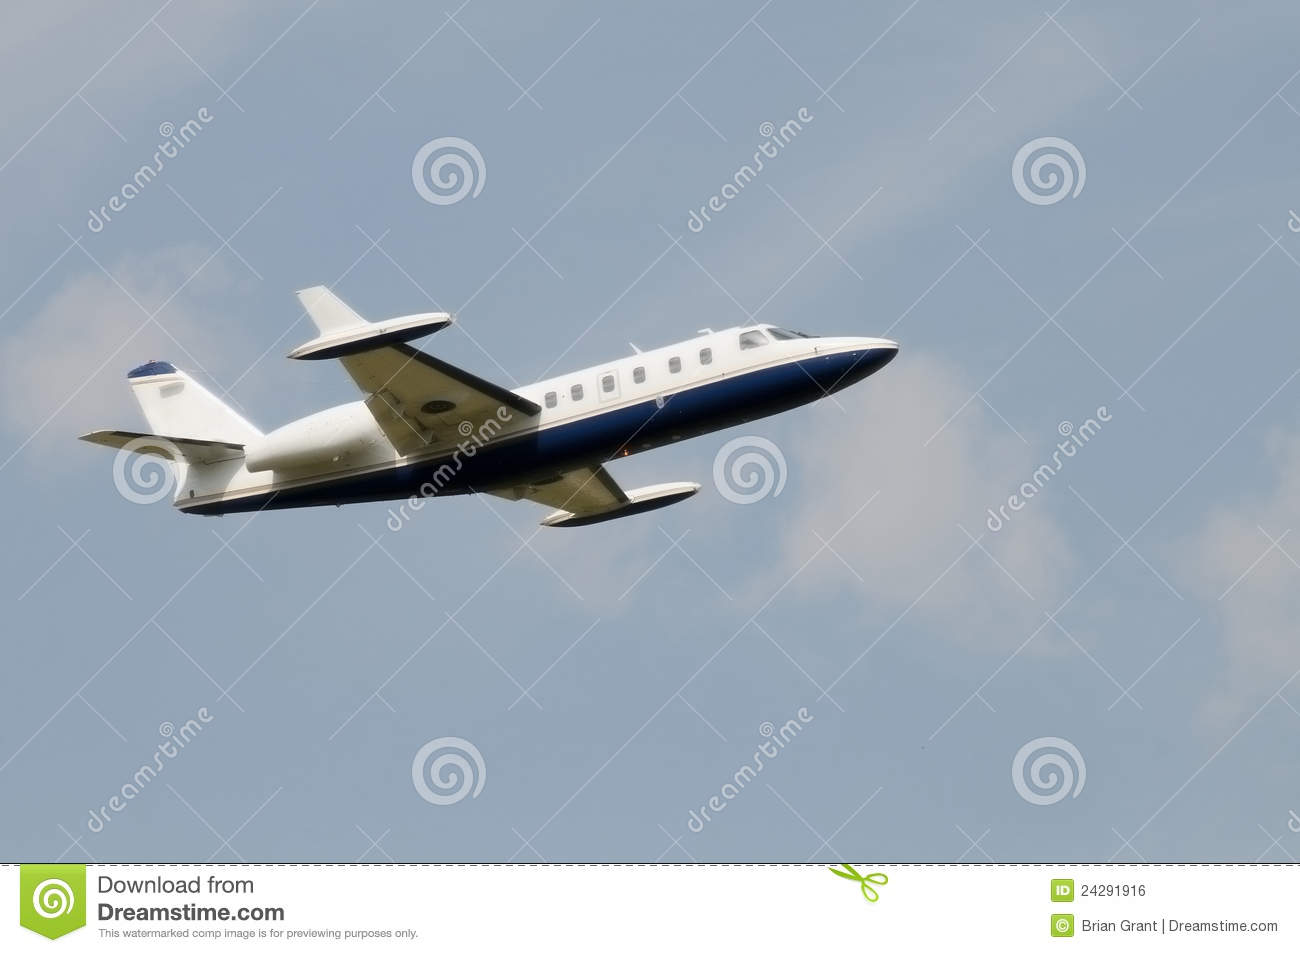 Hughes Westwind Ltd S Israeli Aircraft Industries 1124a N220dh Corporate Aviation Stock Photo 0088